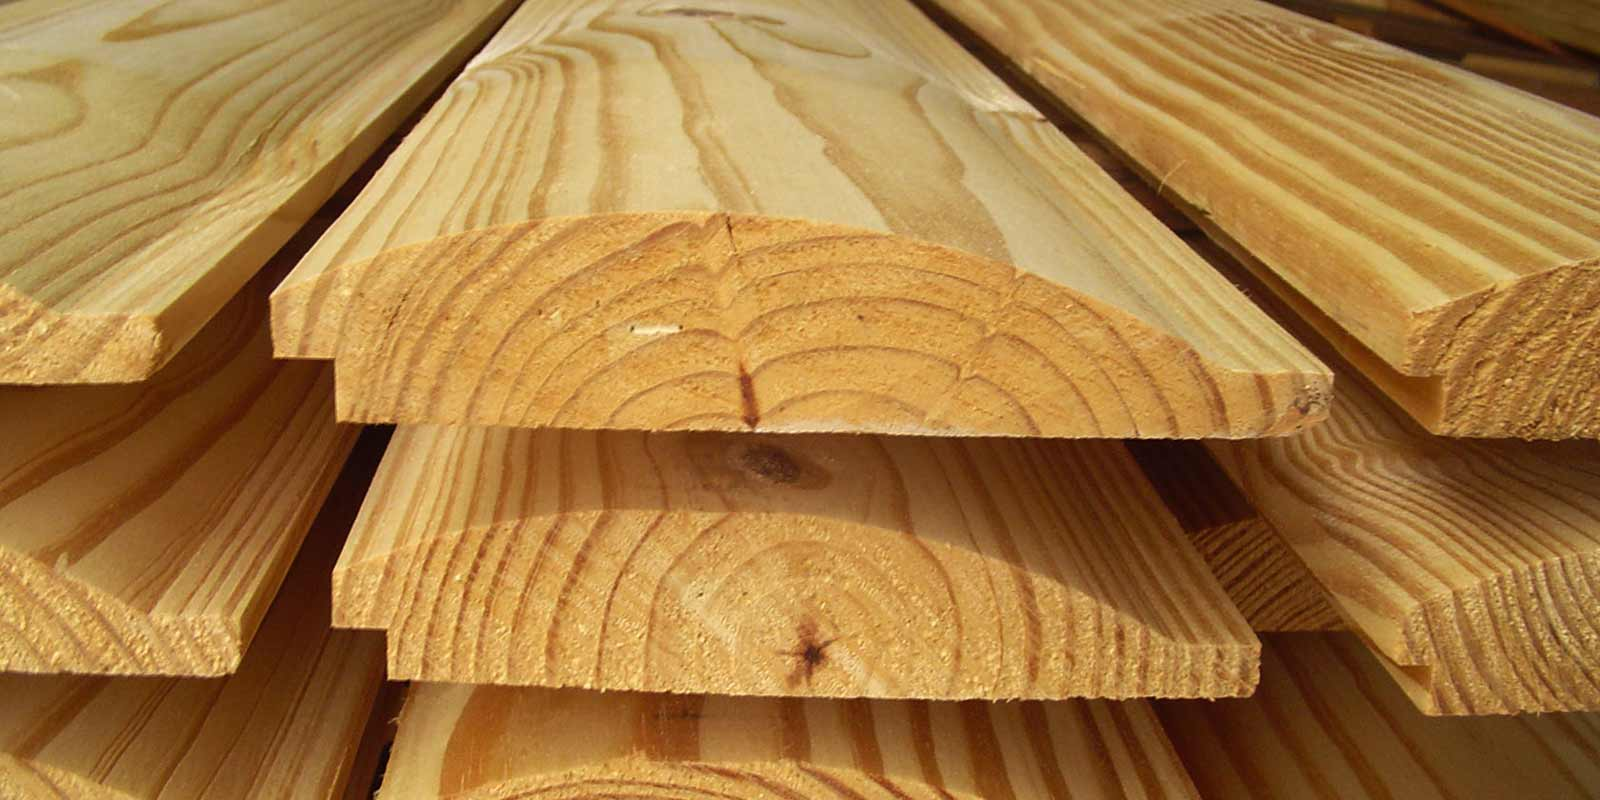 Best Type of Wood for DIY Projects